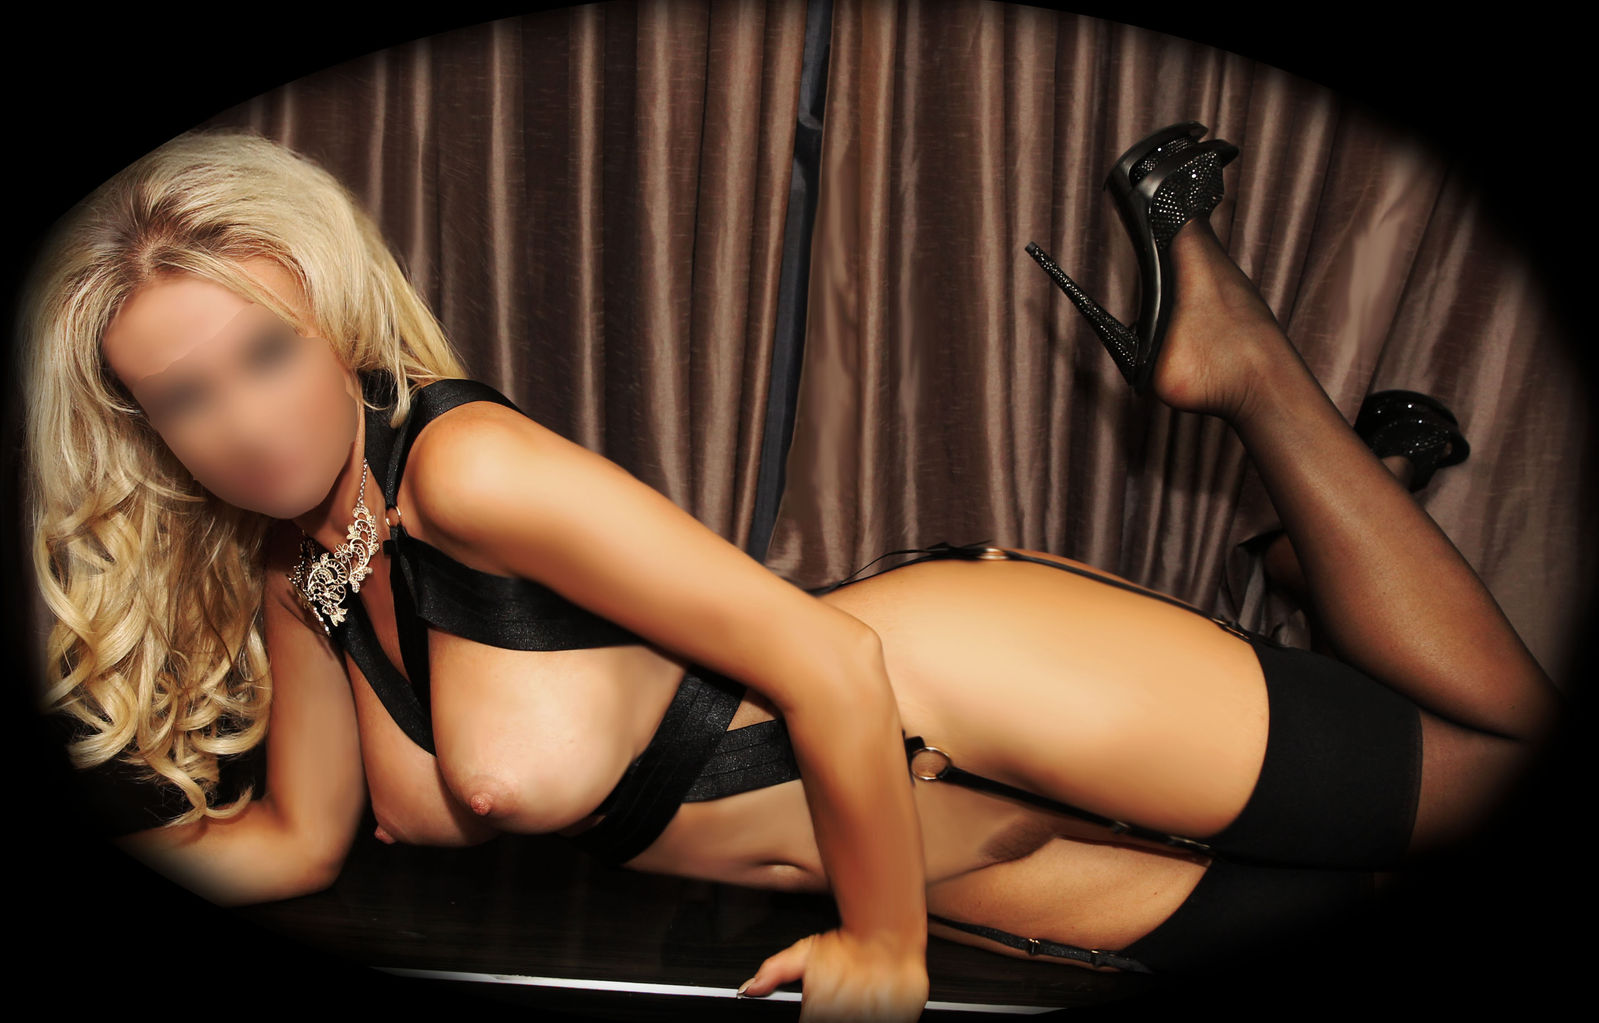 adult page call escort Perth